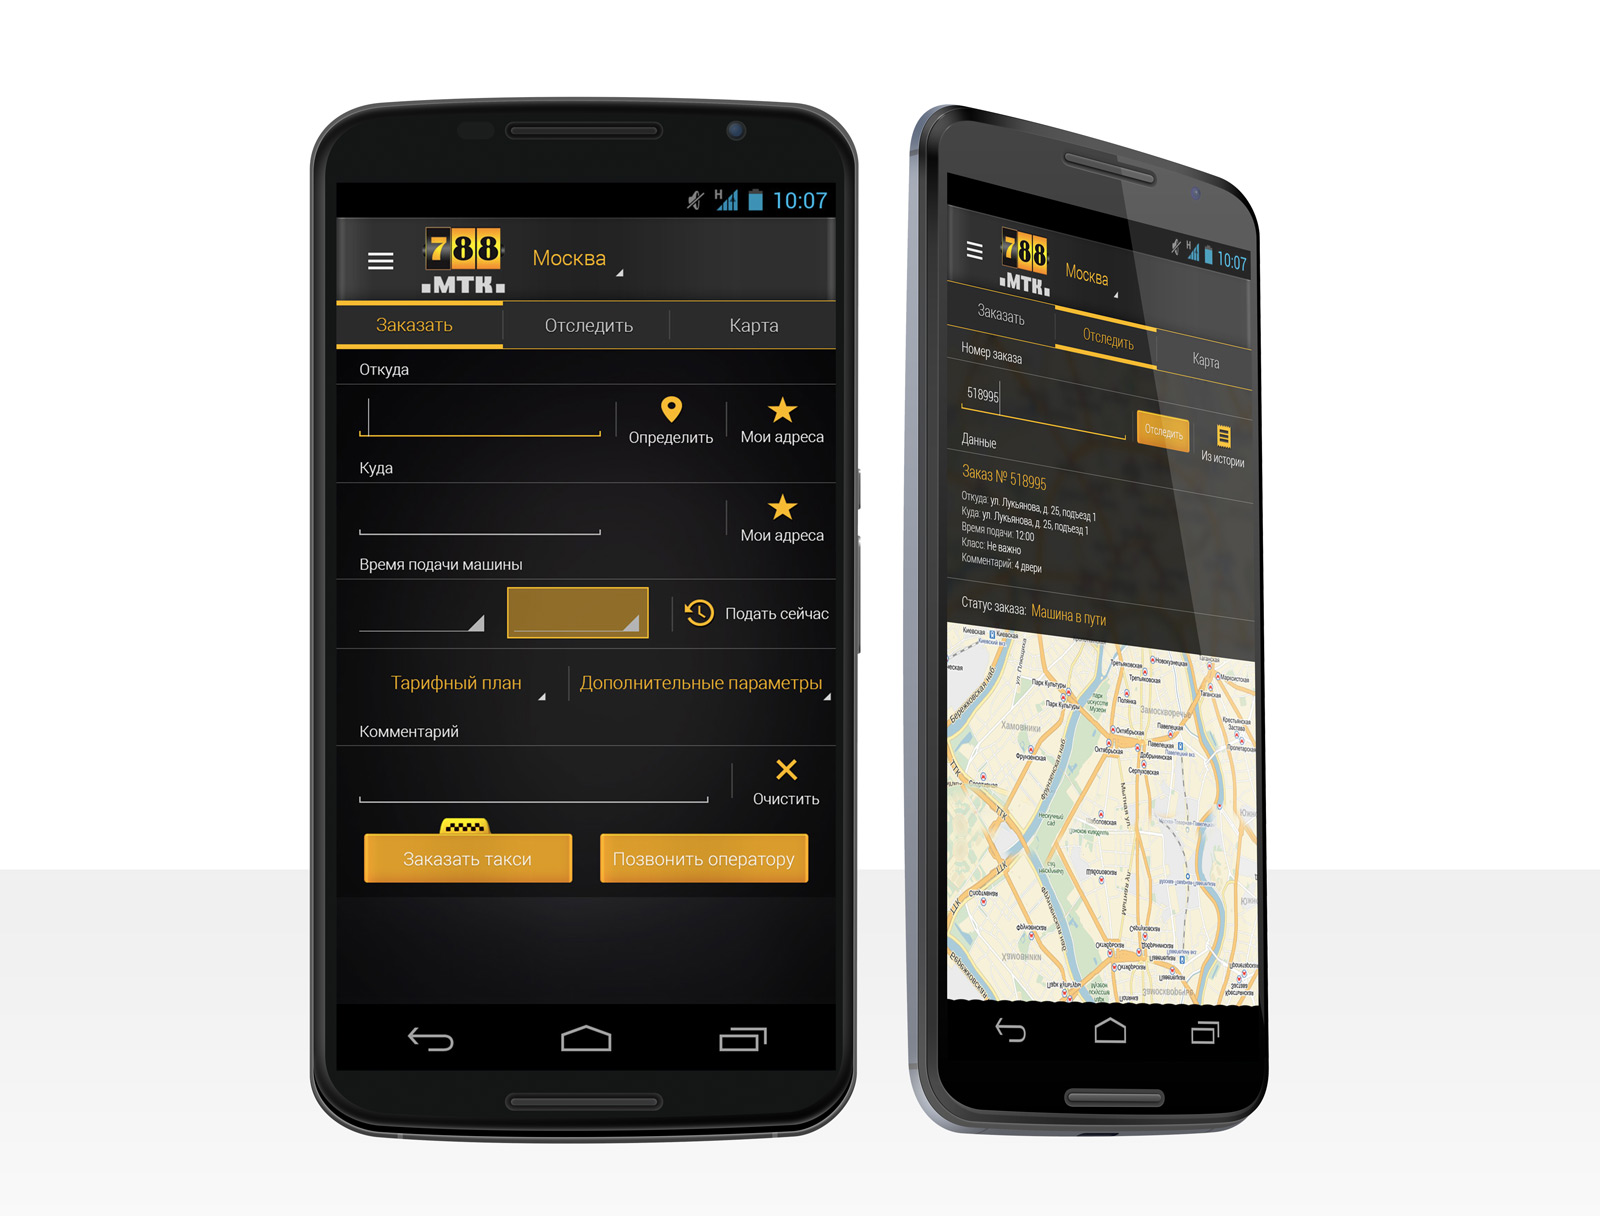 Taxi Android App Design By Denisyakovlev On Deviantart